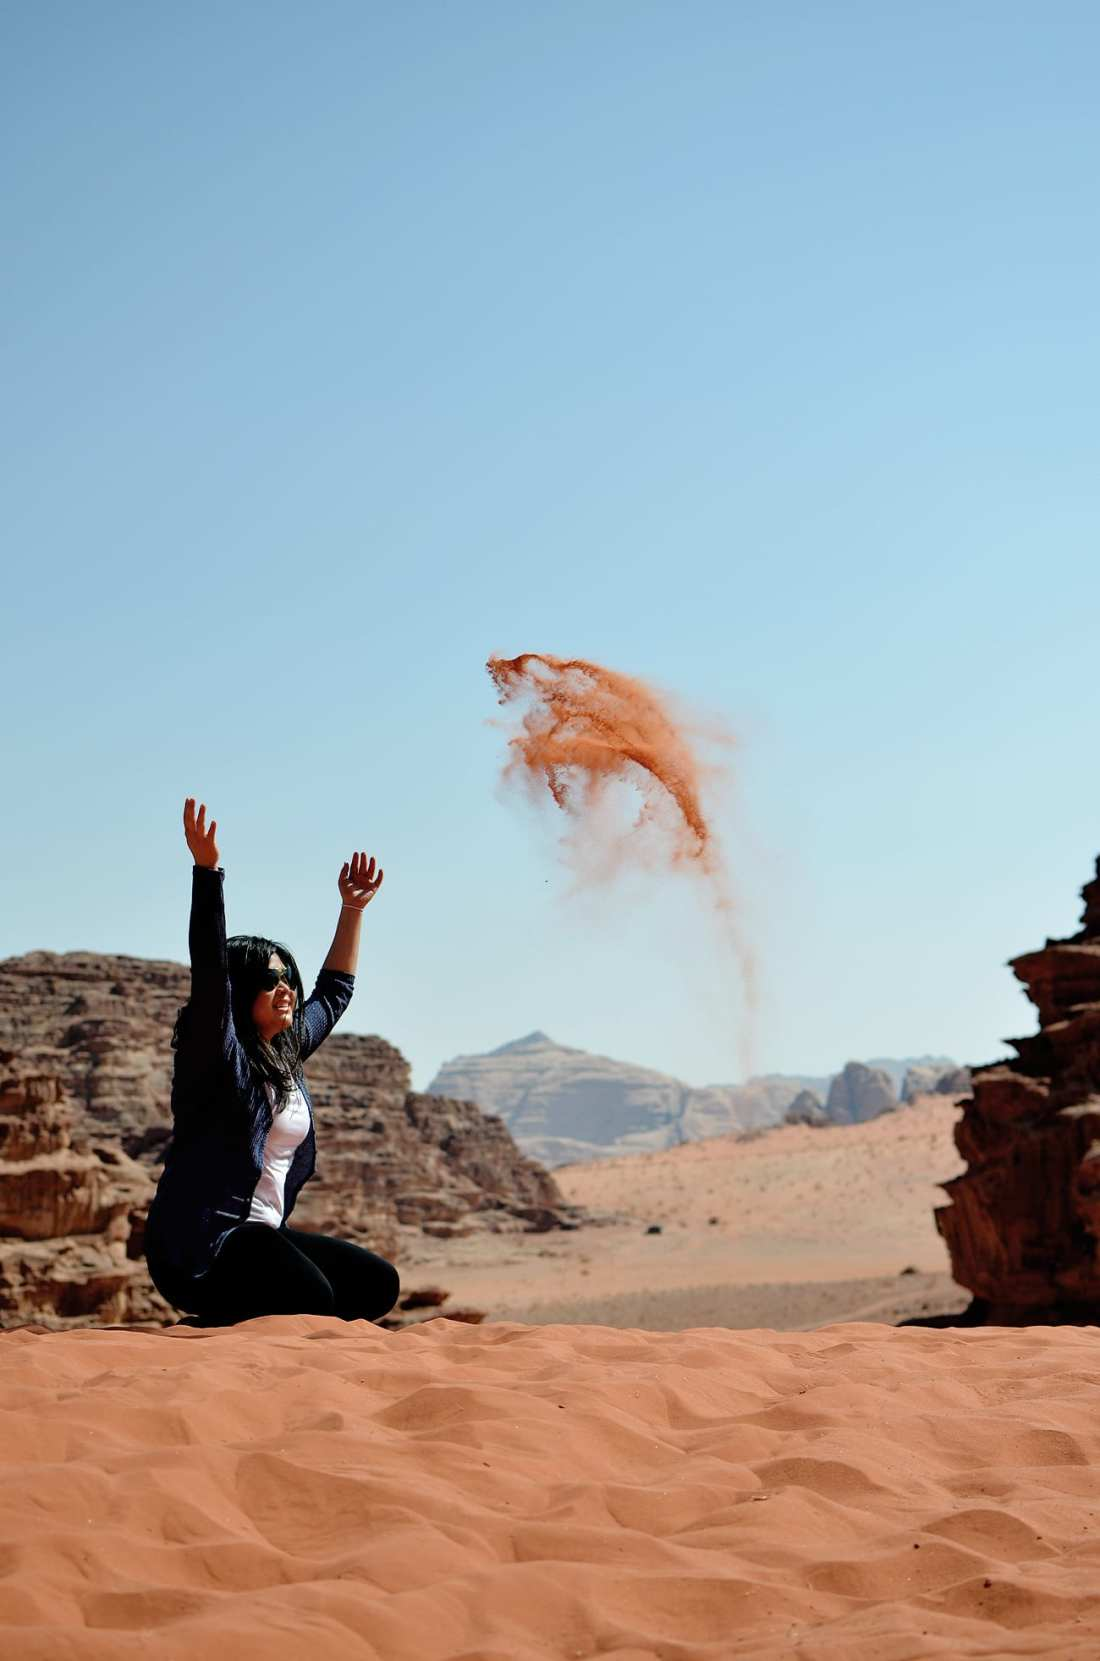 A trip to Jordan isn't complete without booking a Wadi Rum camping trip and settling down in bubble tents after a full day Wadi Rum tour! Surprisingly there was no sandy blowback. This is my favourite picture I'd say!